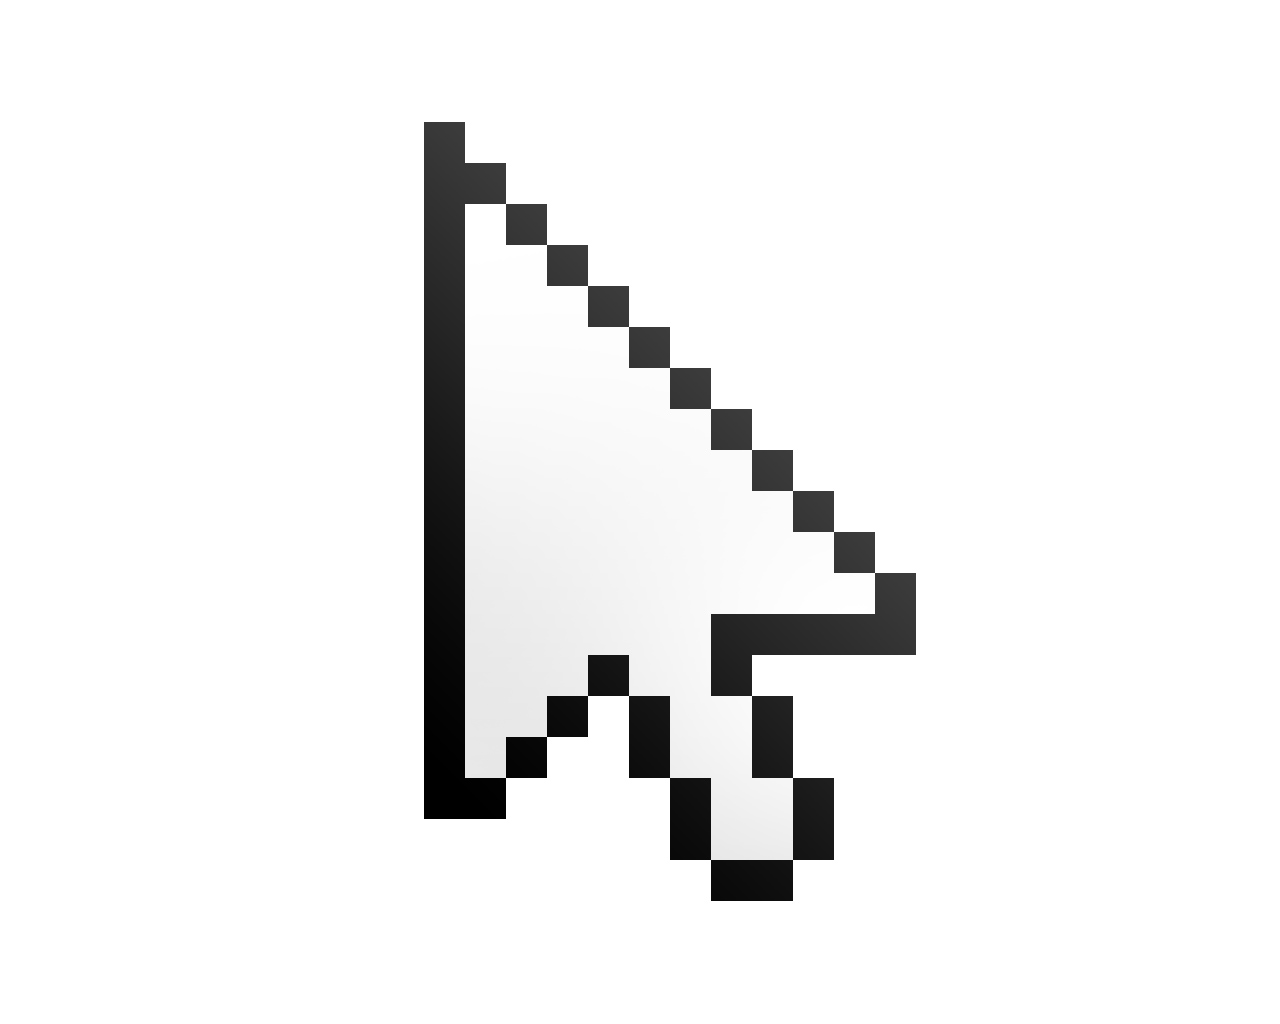 18 Computer Mouse Cursor Icon Transparent Images